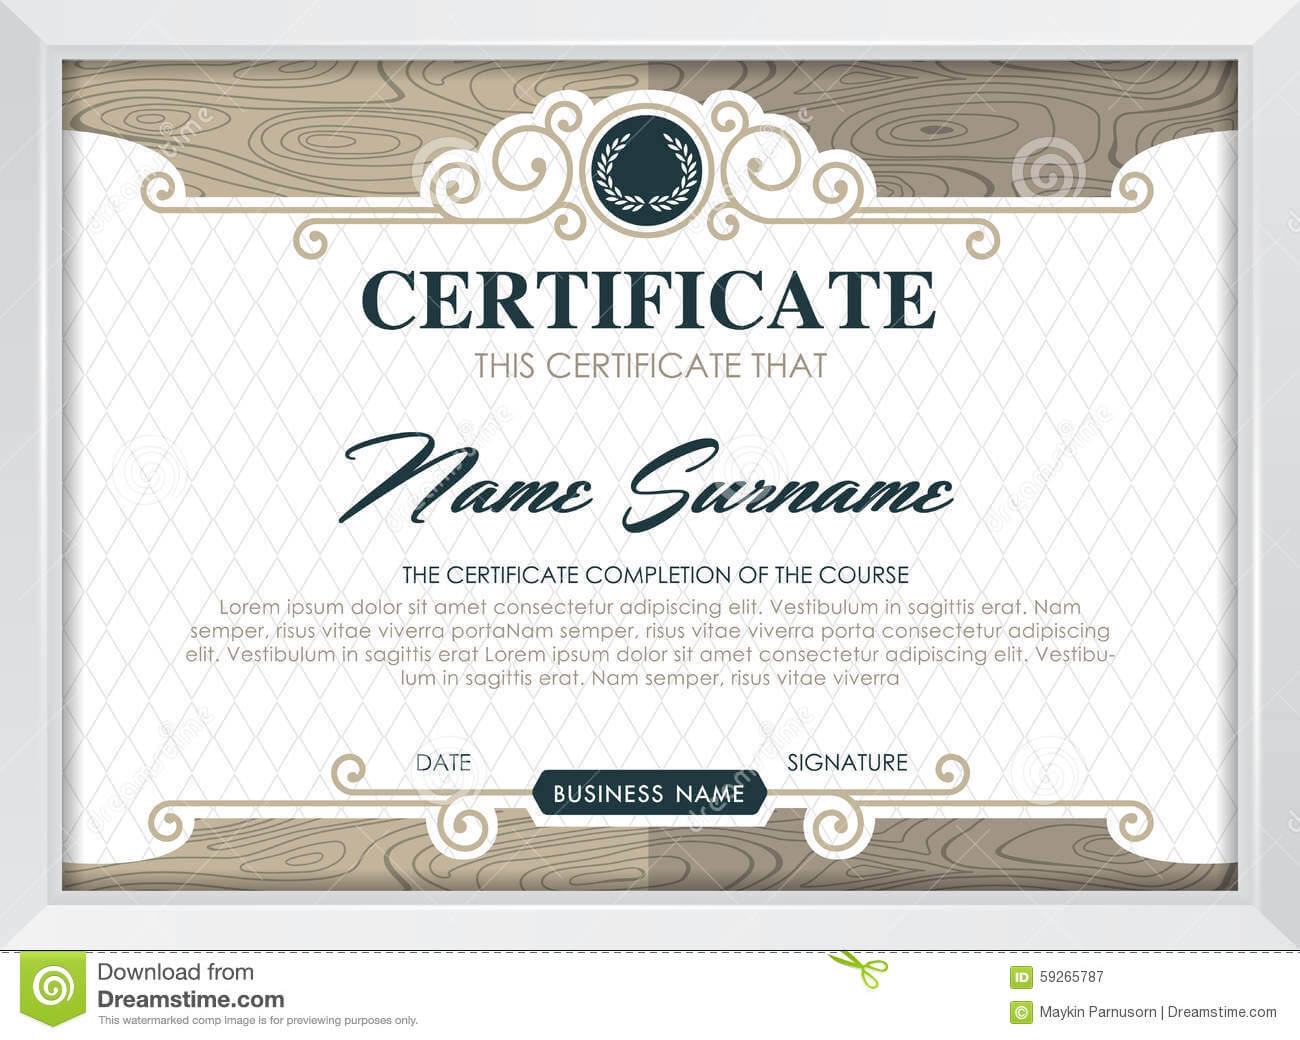 Certificate Stock Vector. Illustration Of Antique, Award Regarding Qualification Certificate Template